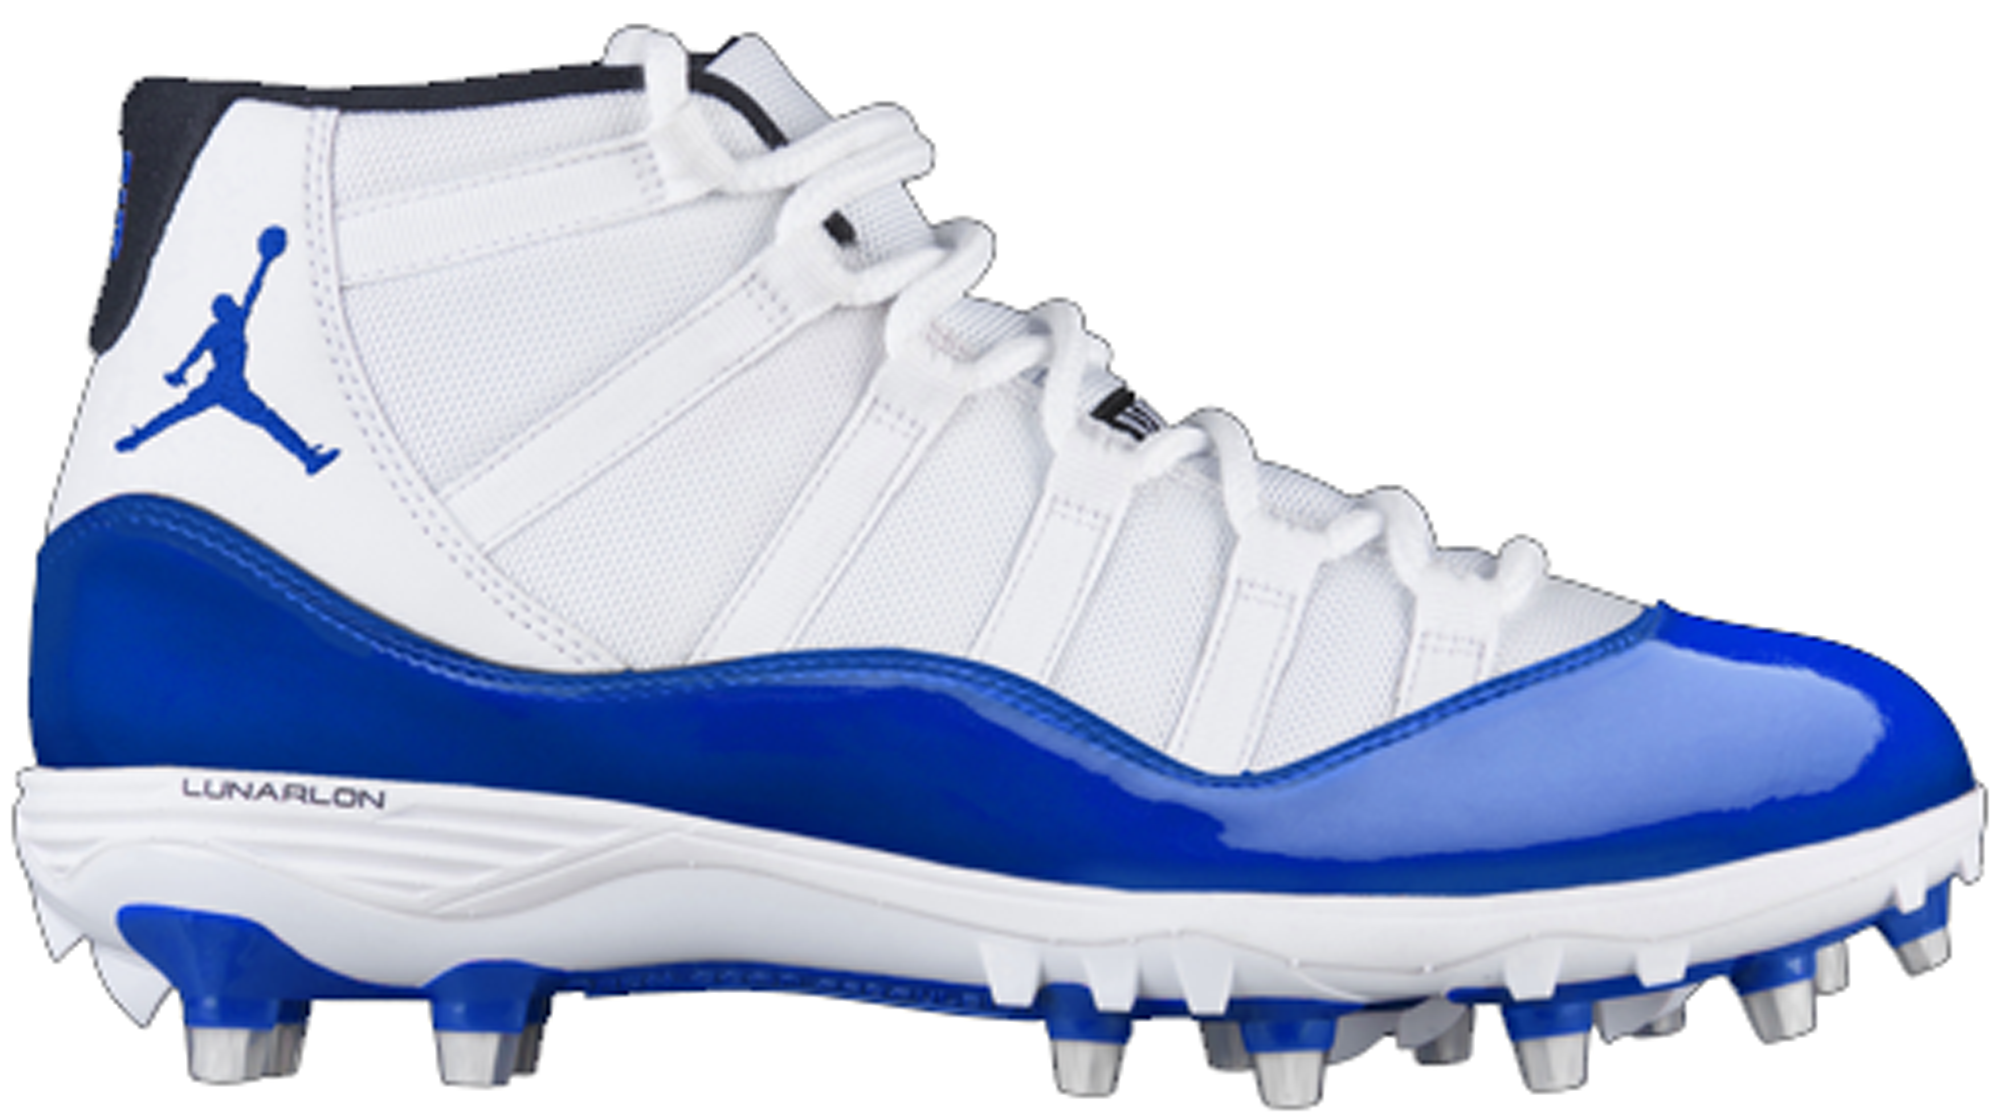 newest 57b48 94c18 Air Jordan 11 Blue Cleat